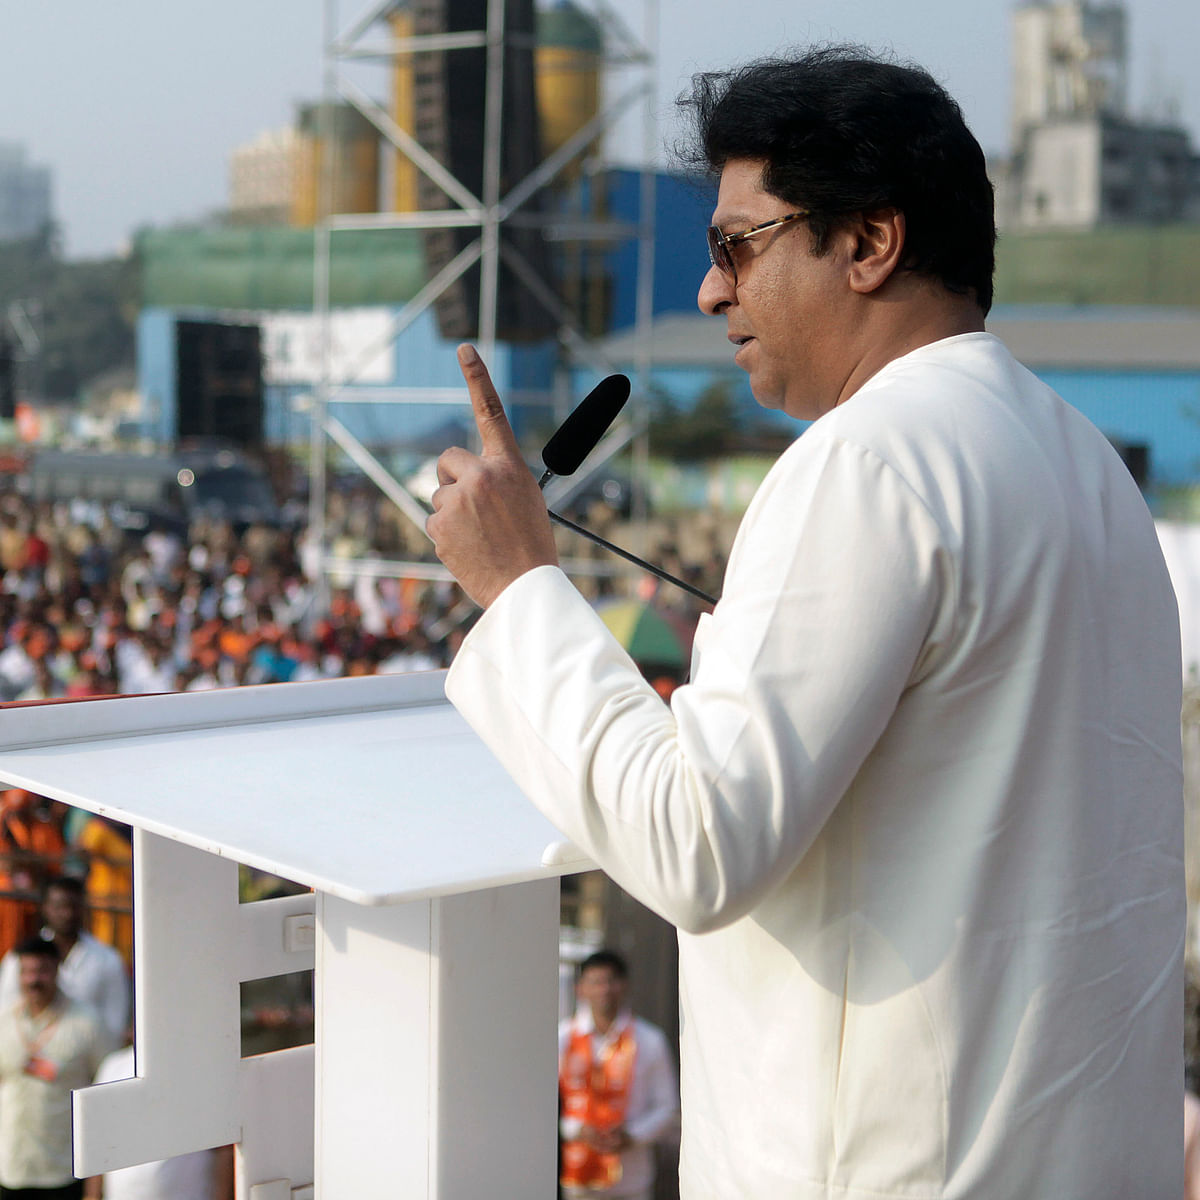 Mumbai: Meeting between Raj Thackeray and Prasad Lad triggers talk of an alliance between MNS & BJP in BMC elections